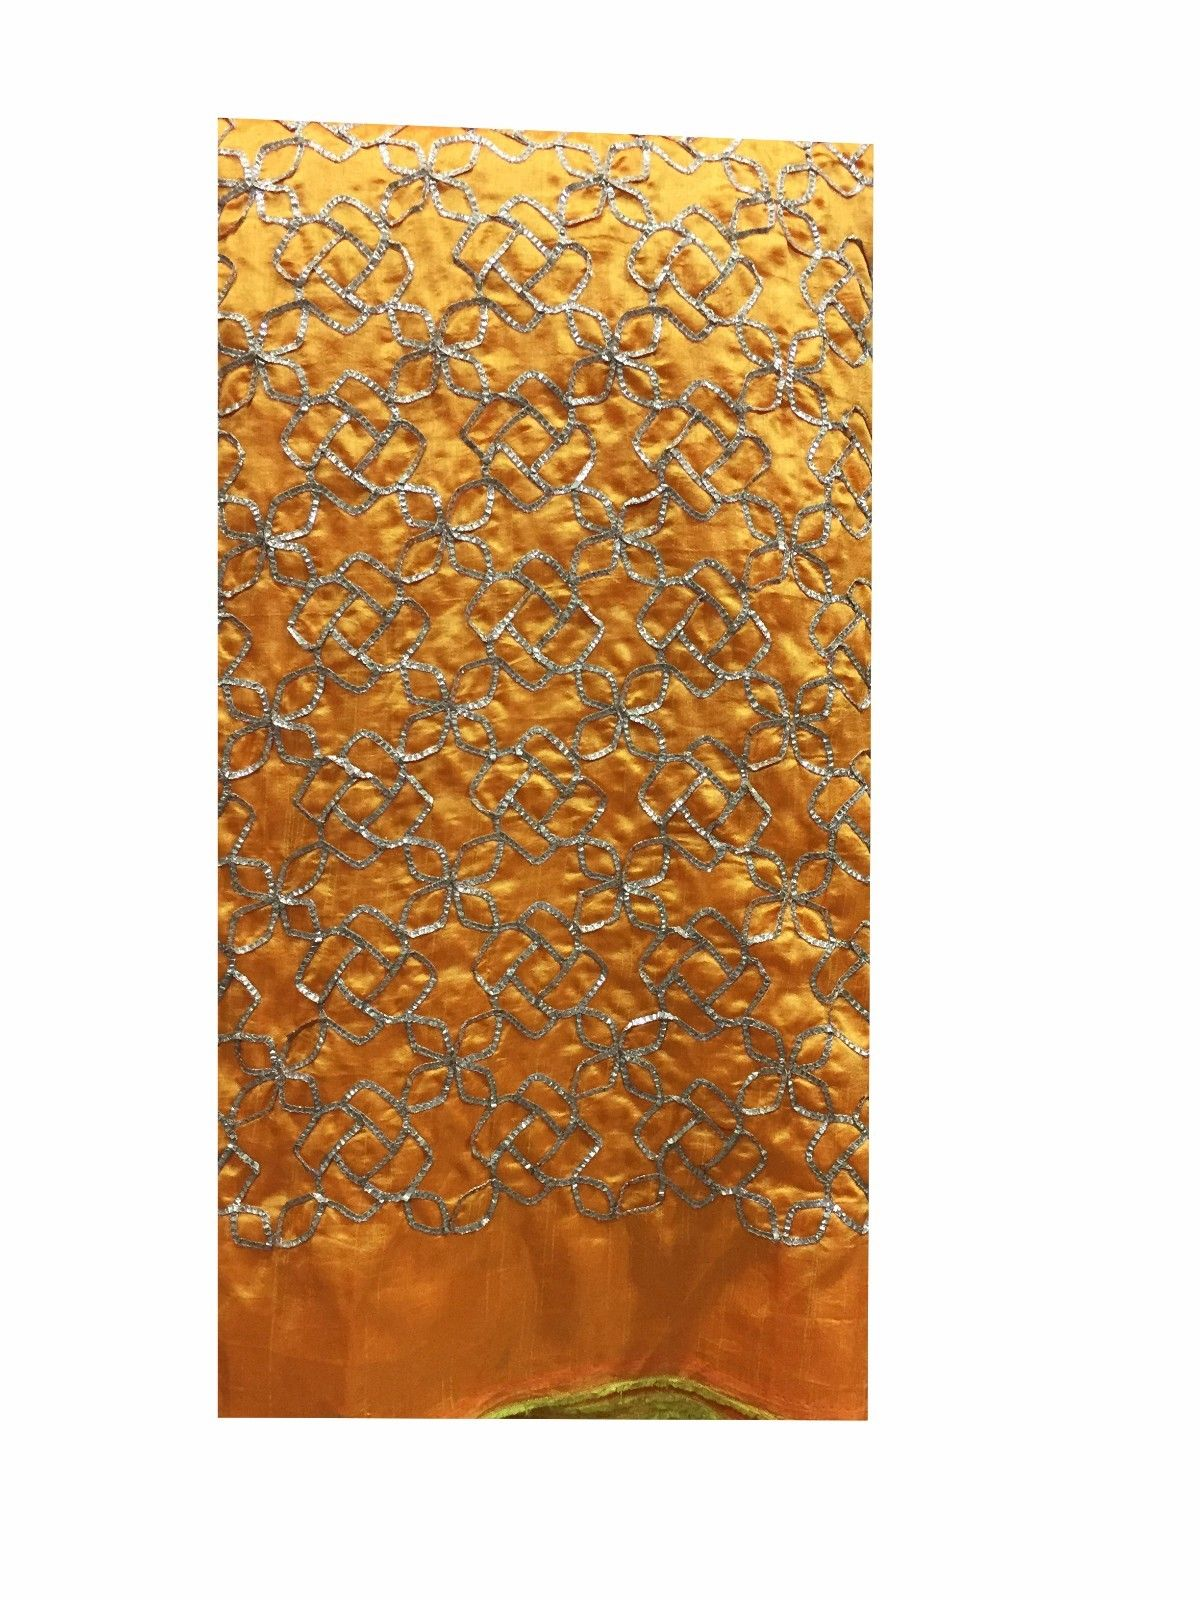 fabric purchase online india embroidery dress online Paper Silk Yellow Orange, Gold 43 inches Wide 8066